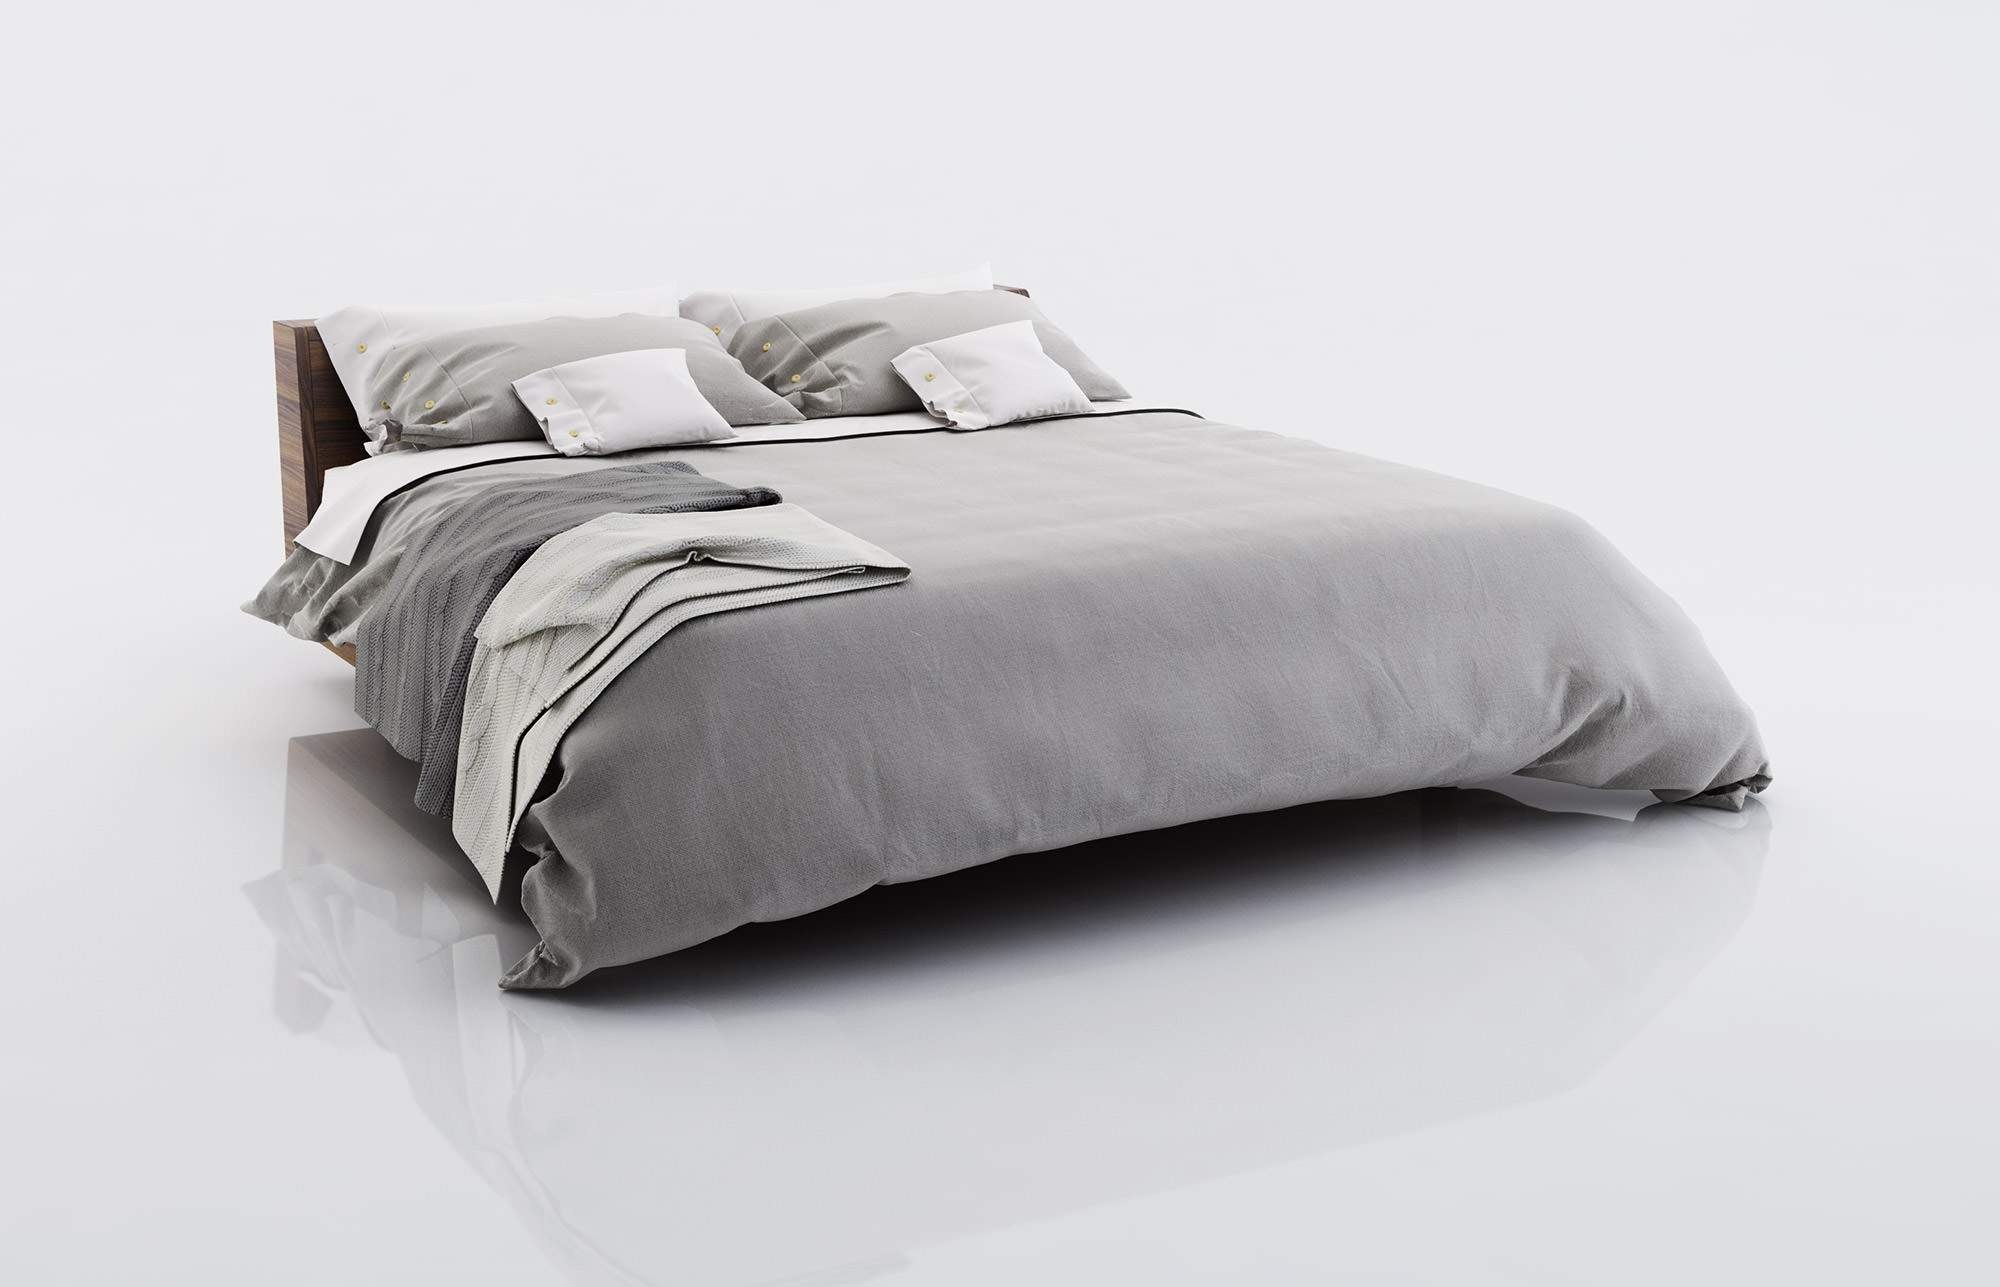 3d Bed Linen With Blankets Cgtrader